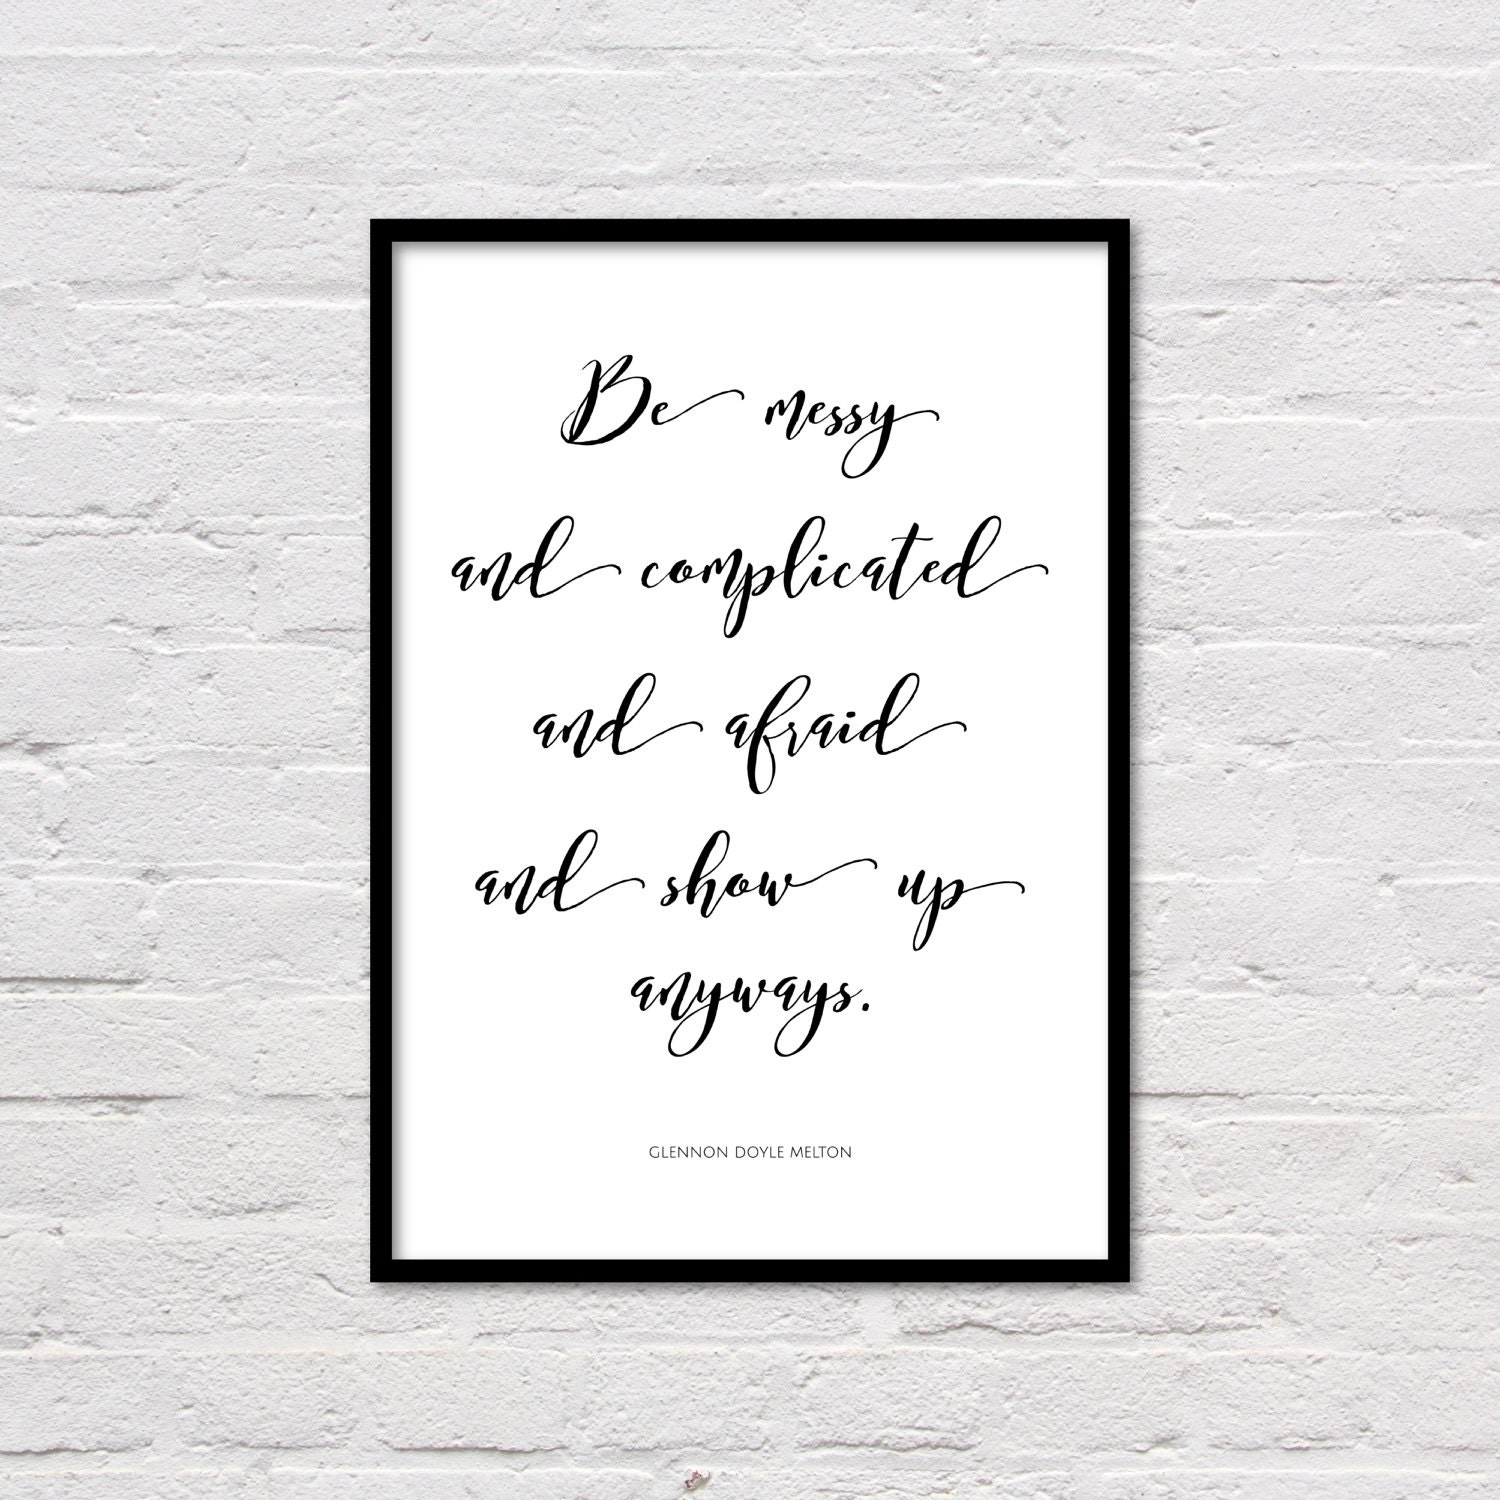 Glennon Doyle Melton Quotes Show Up Print Quote Poster Motivational Art Inspirational